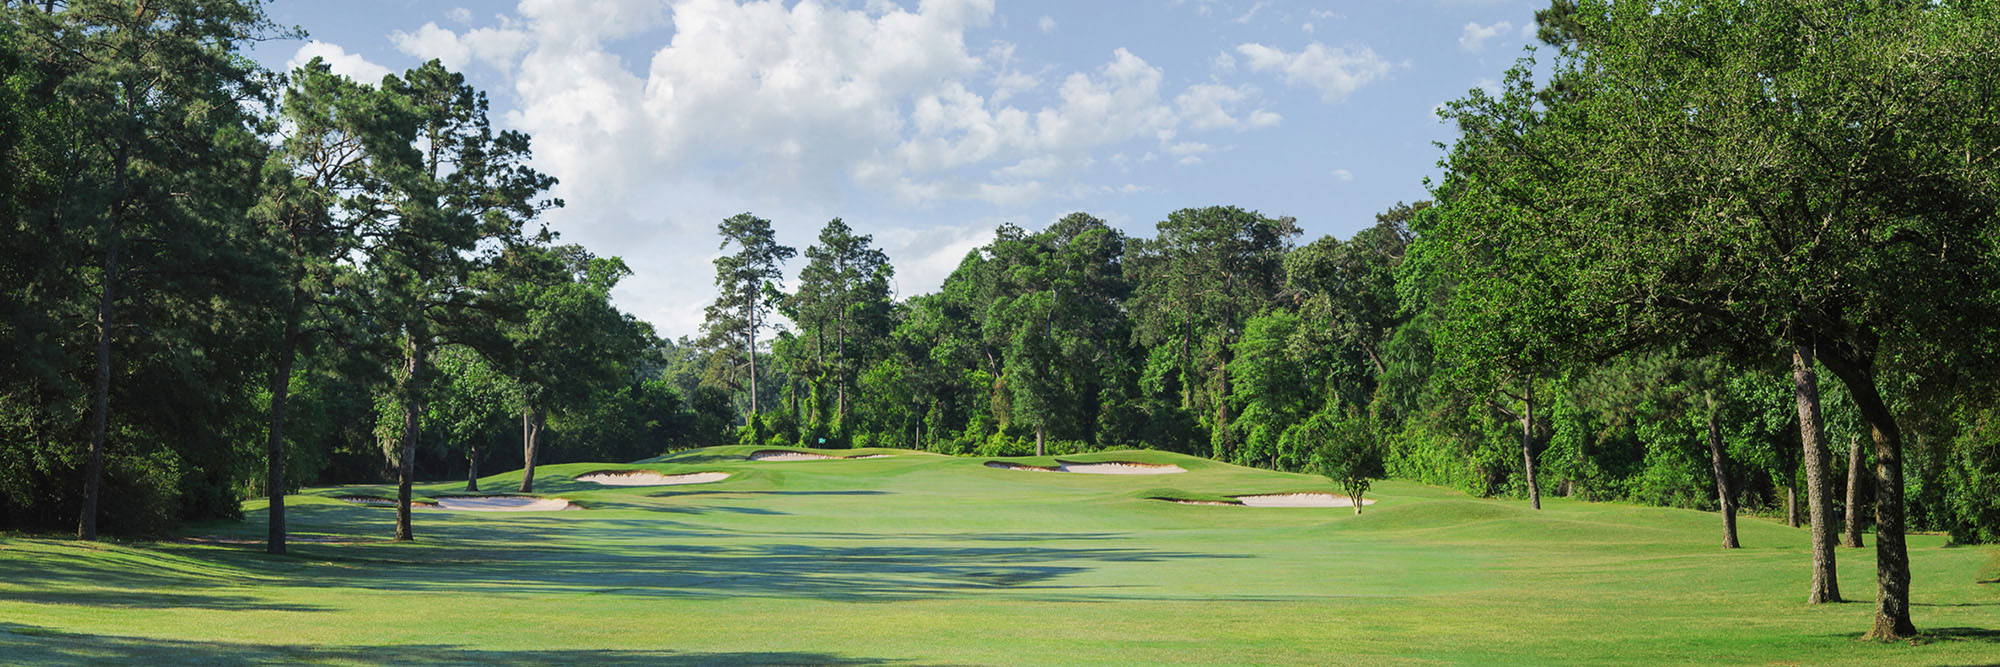 Golf Course Image - Woodlands-Oak Course No. 4